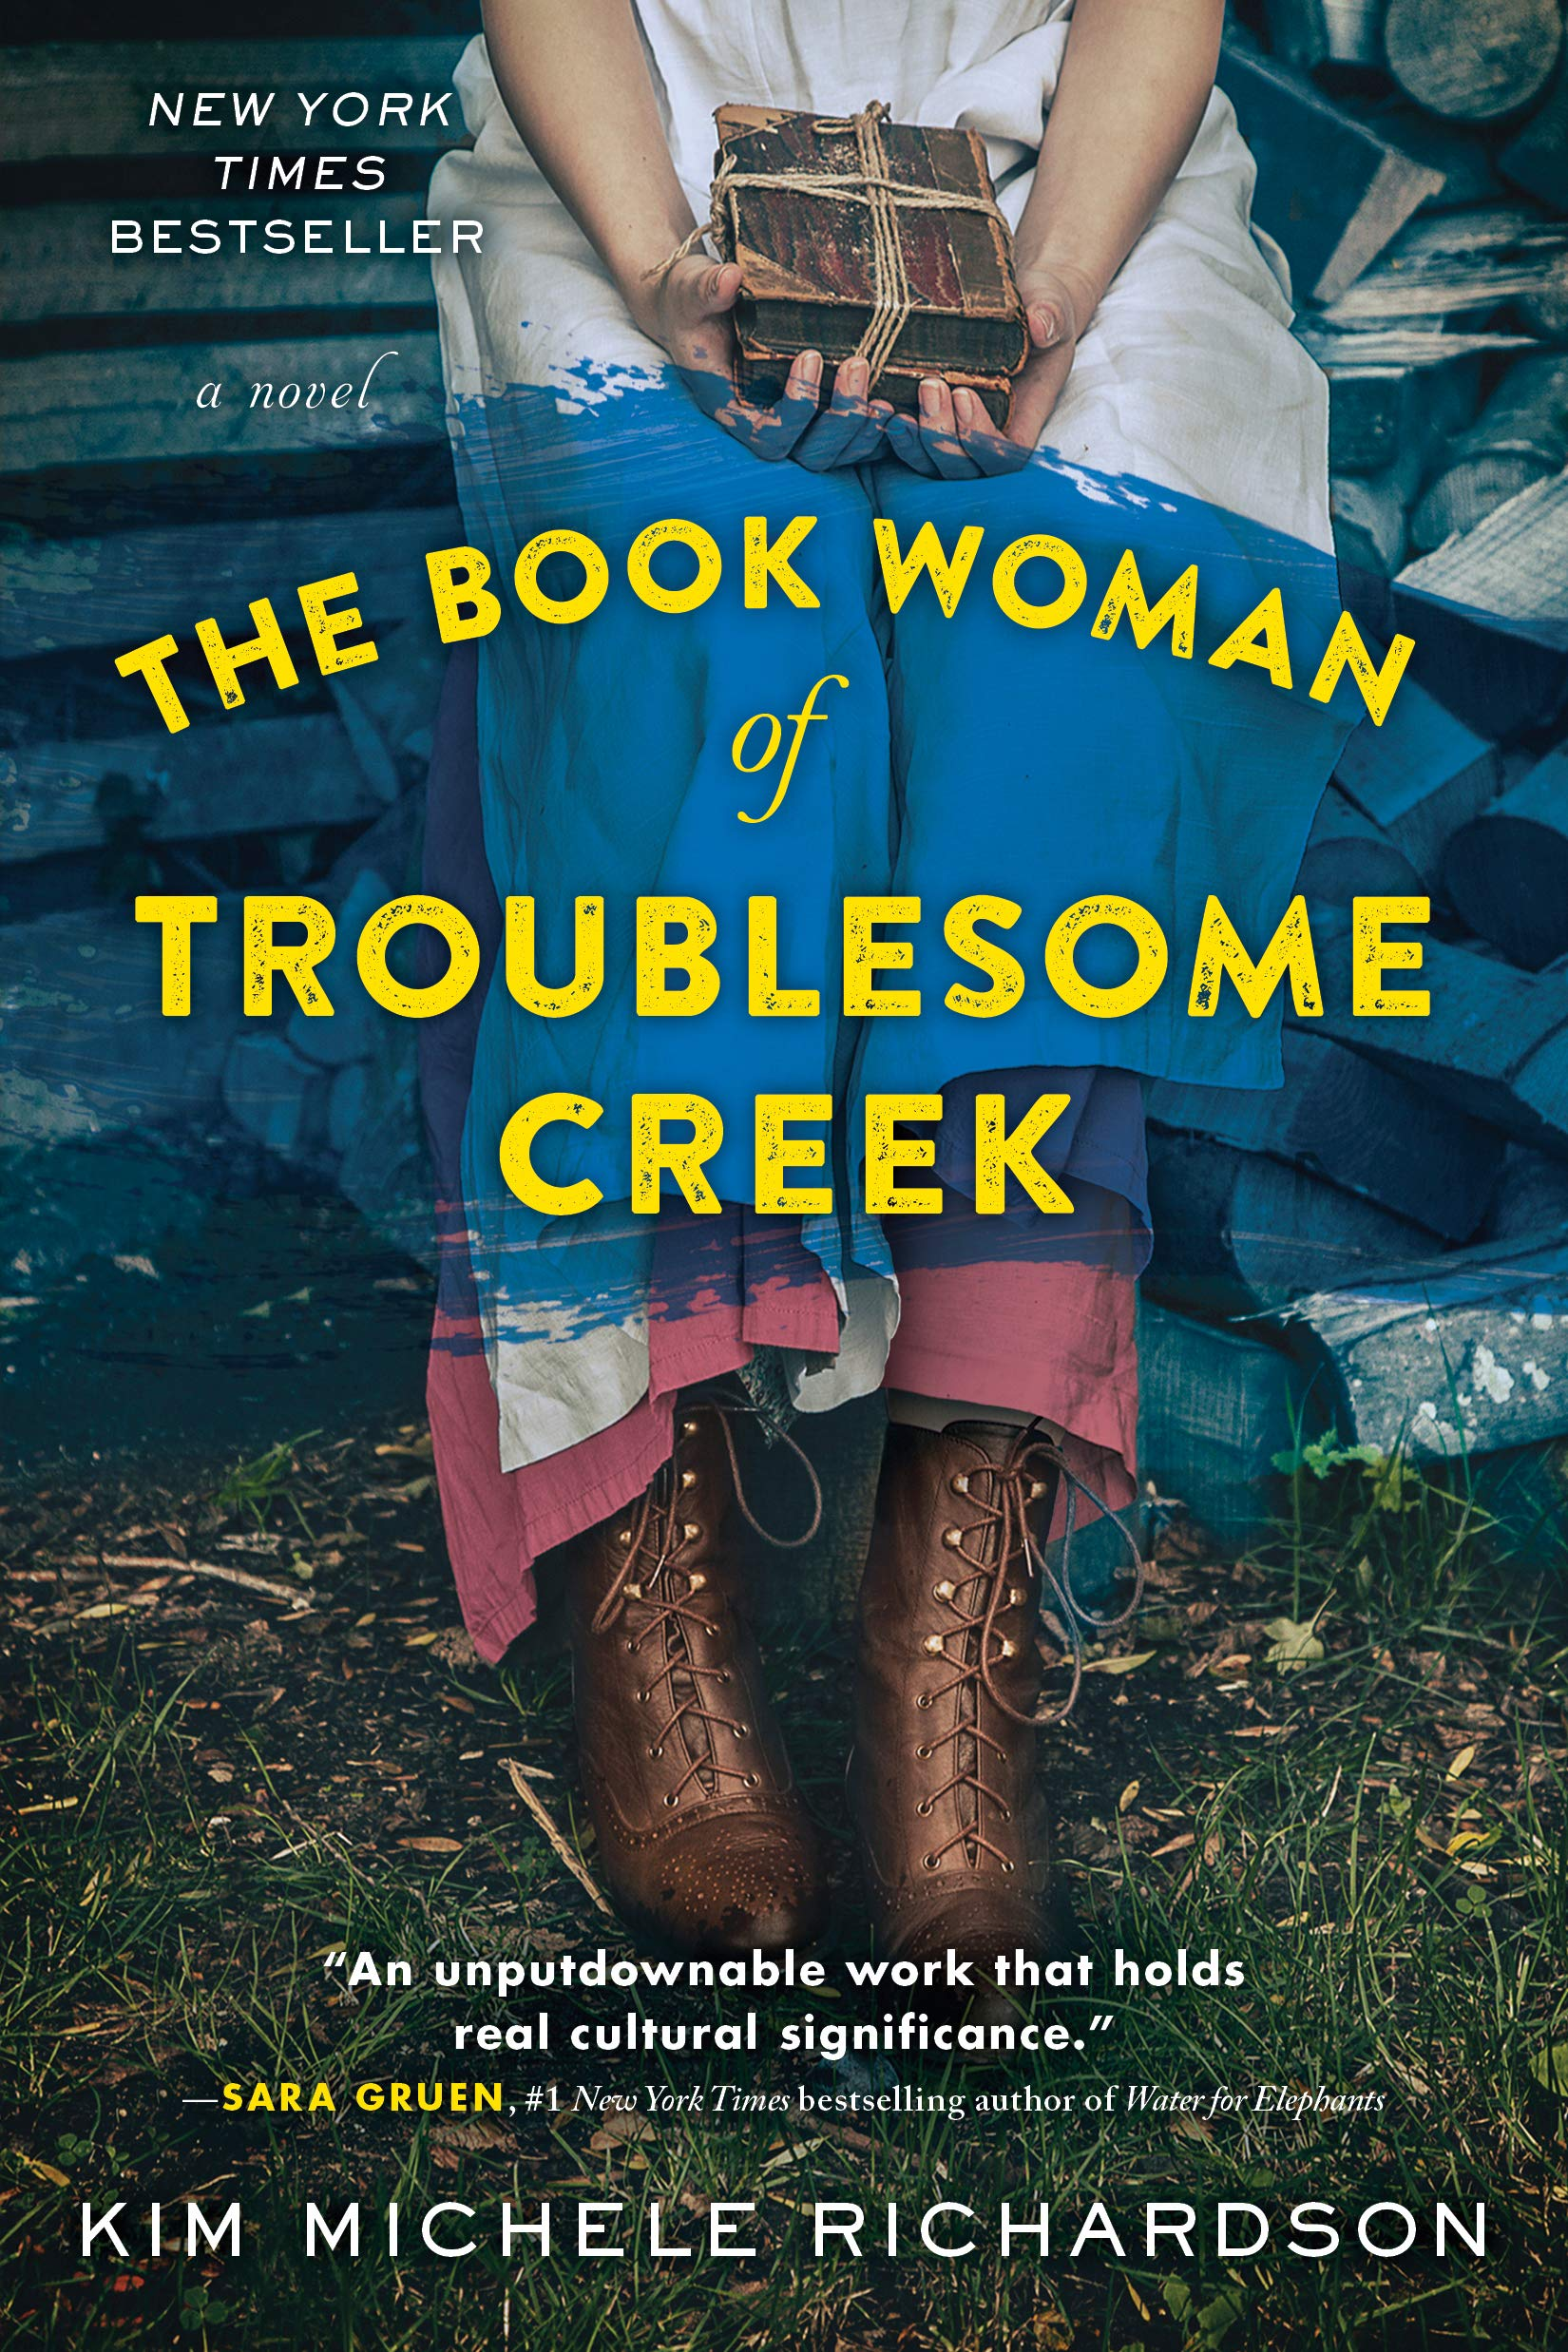 Amazon.com: The Book Woman of Troublesome Creek: A Novel ...